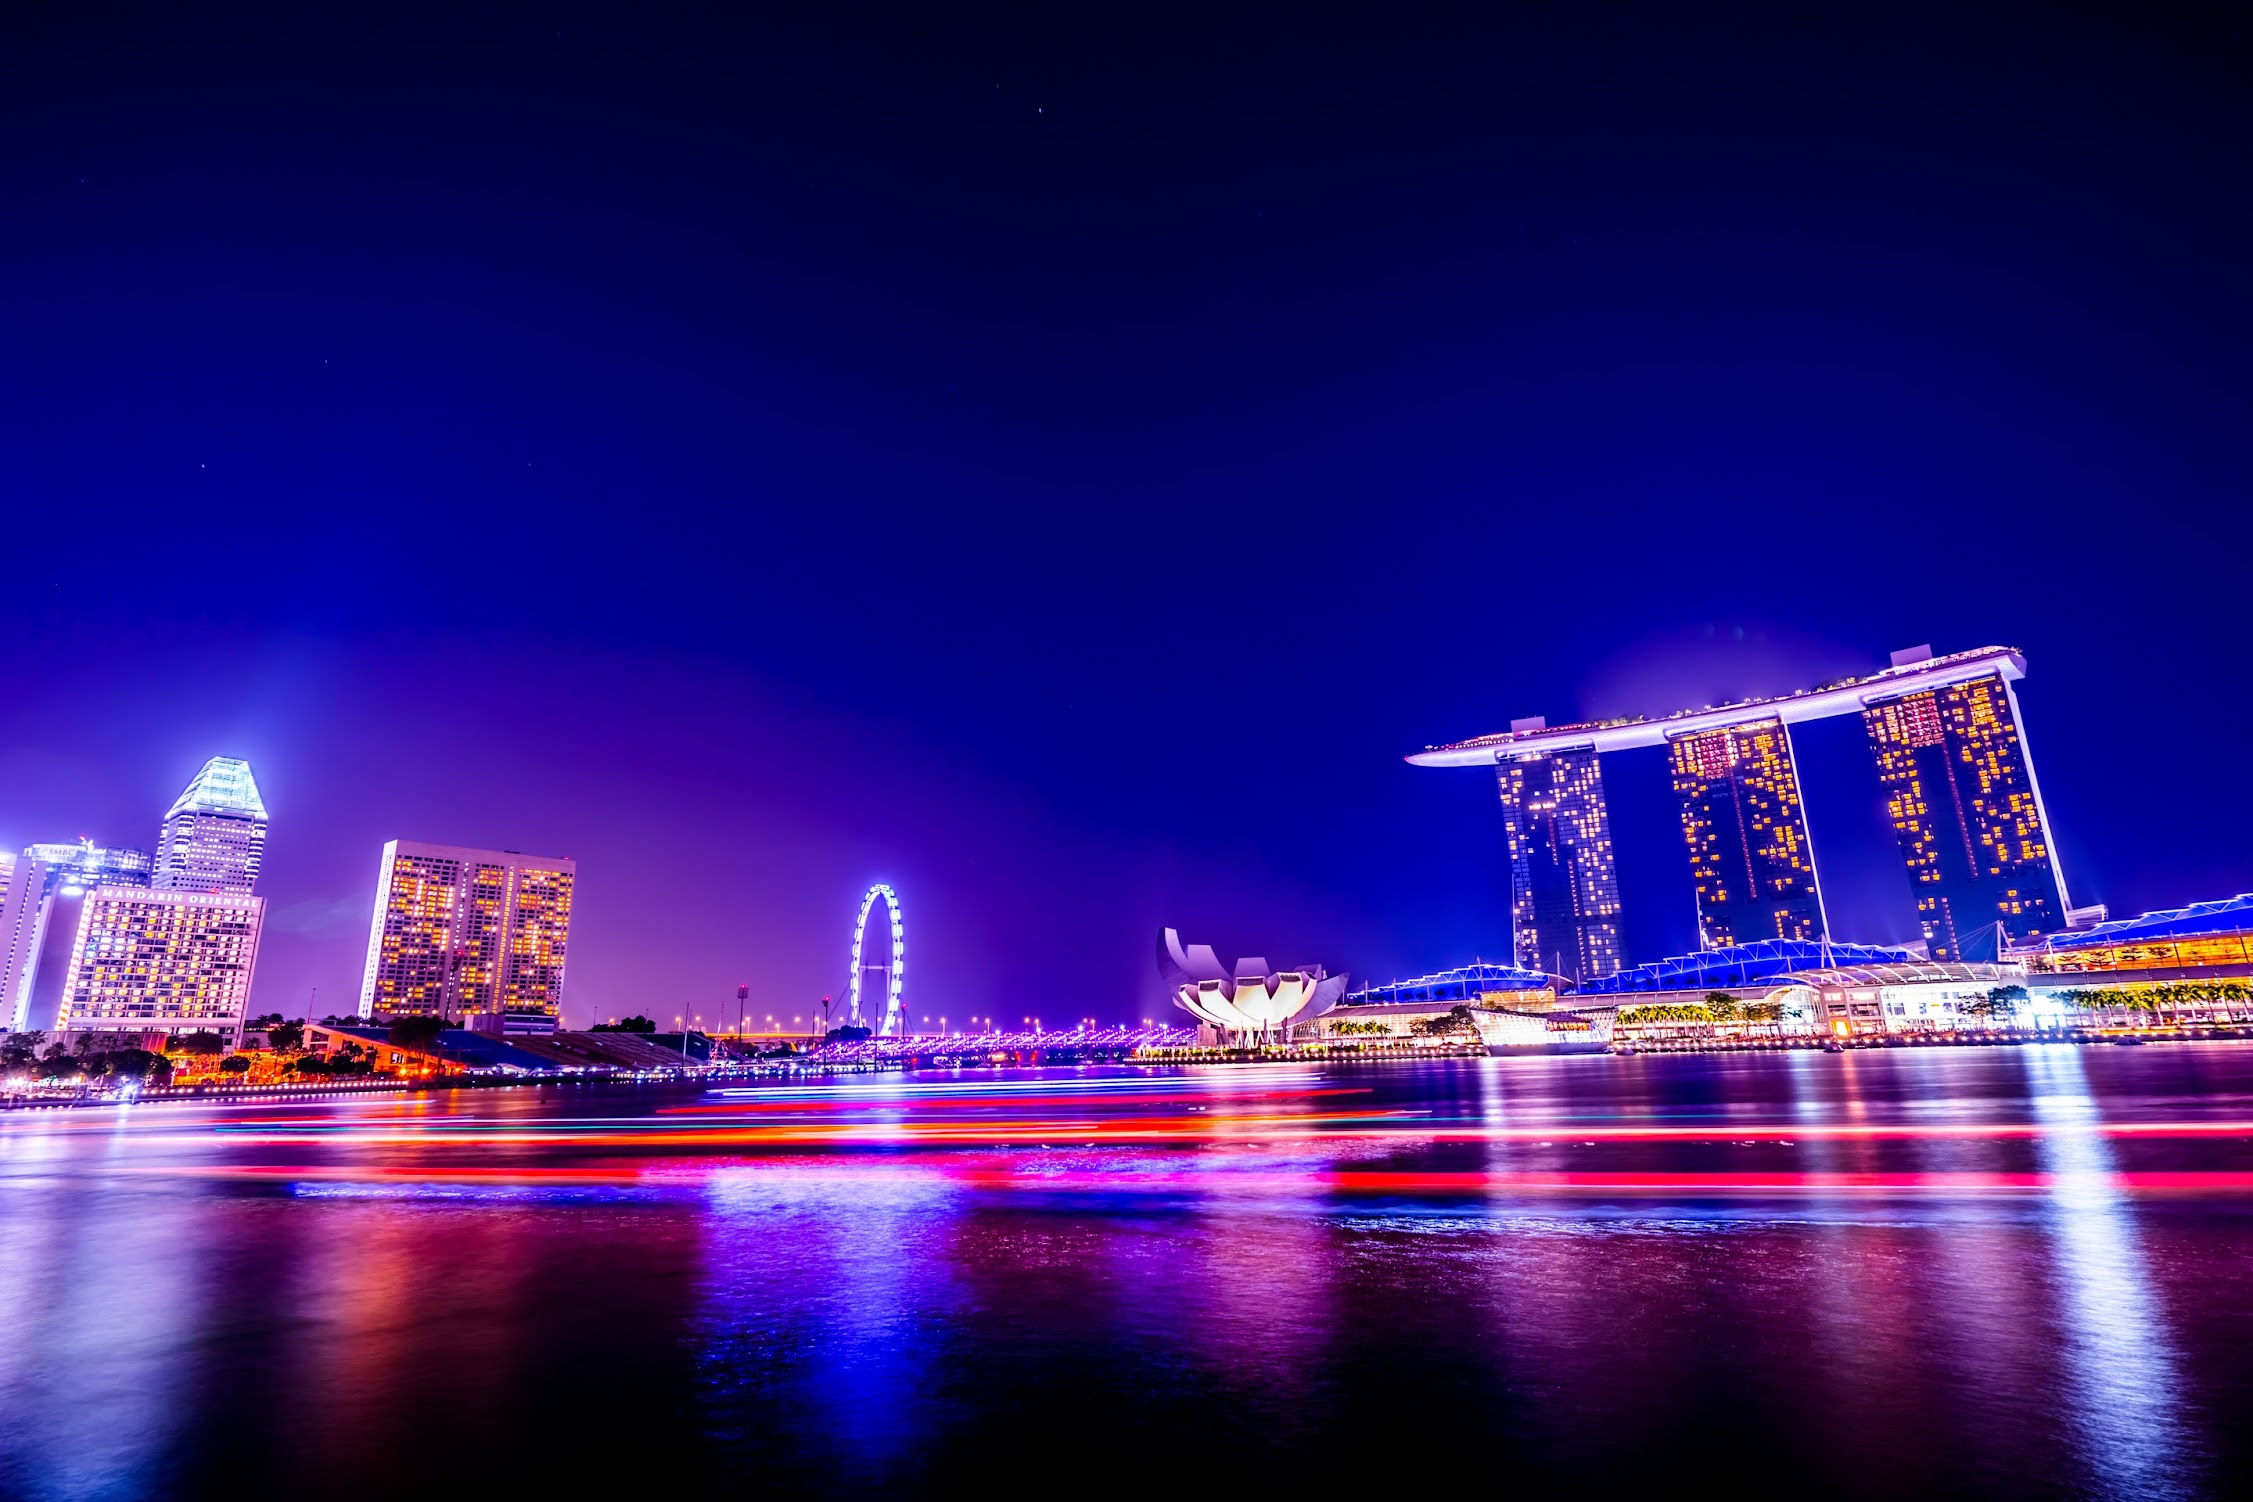 Singapore Marina Bay Sands night view3